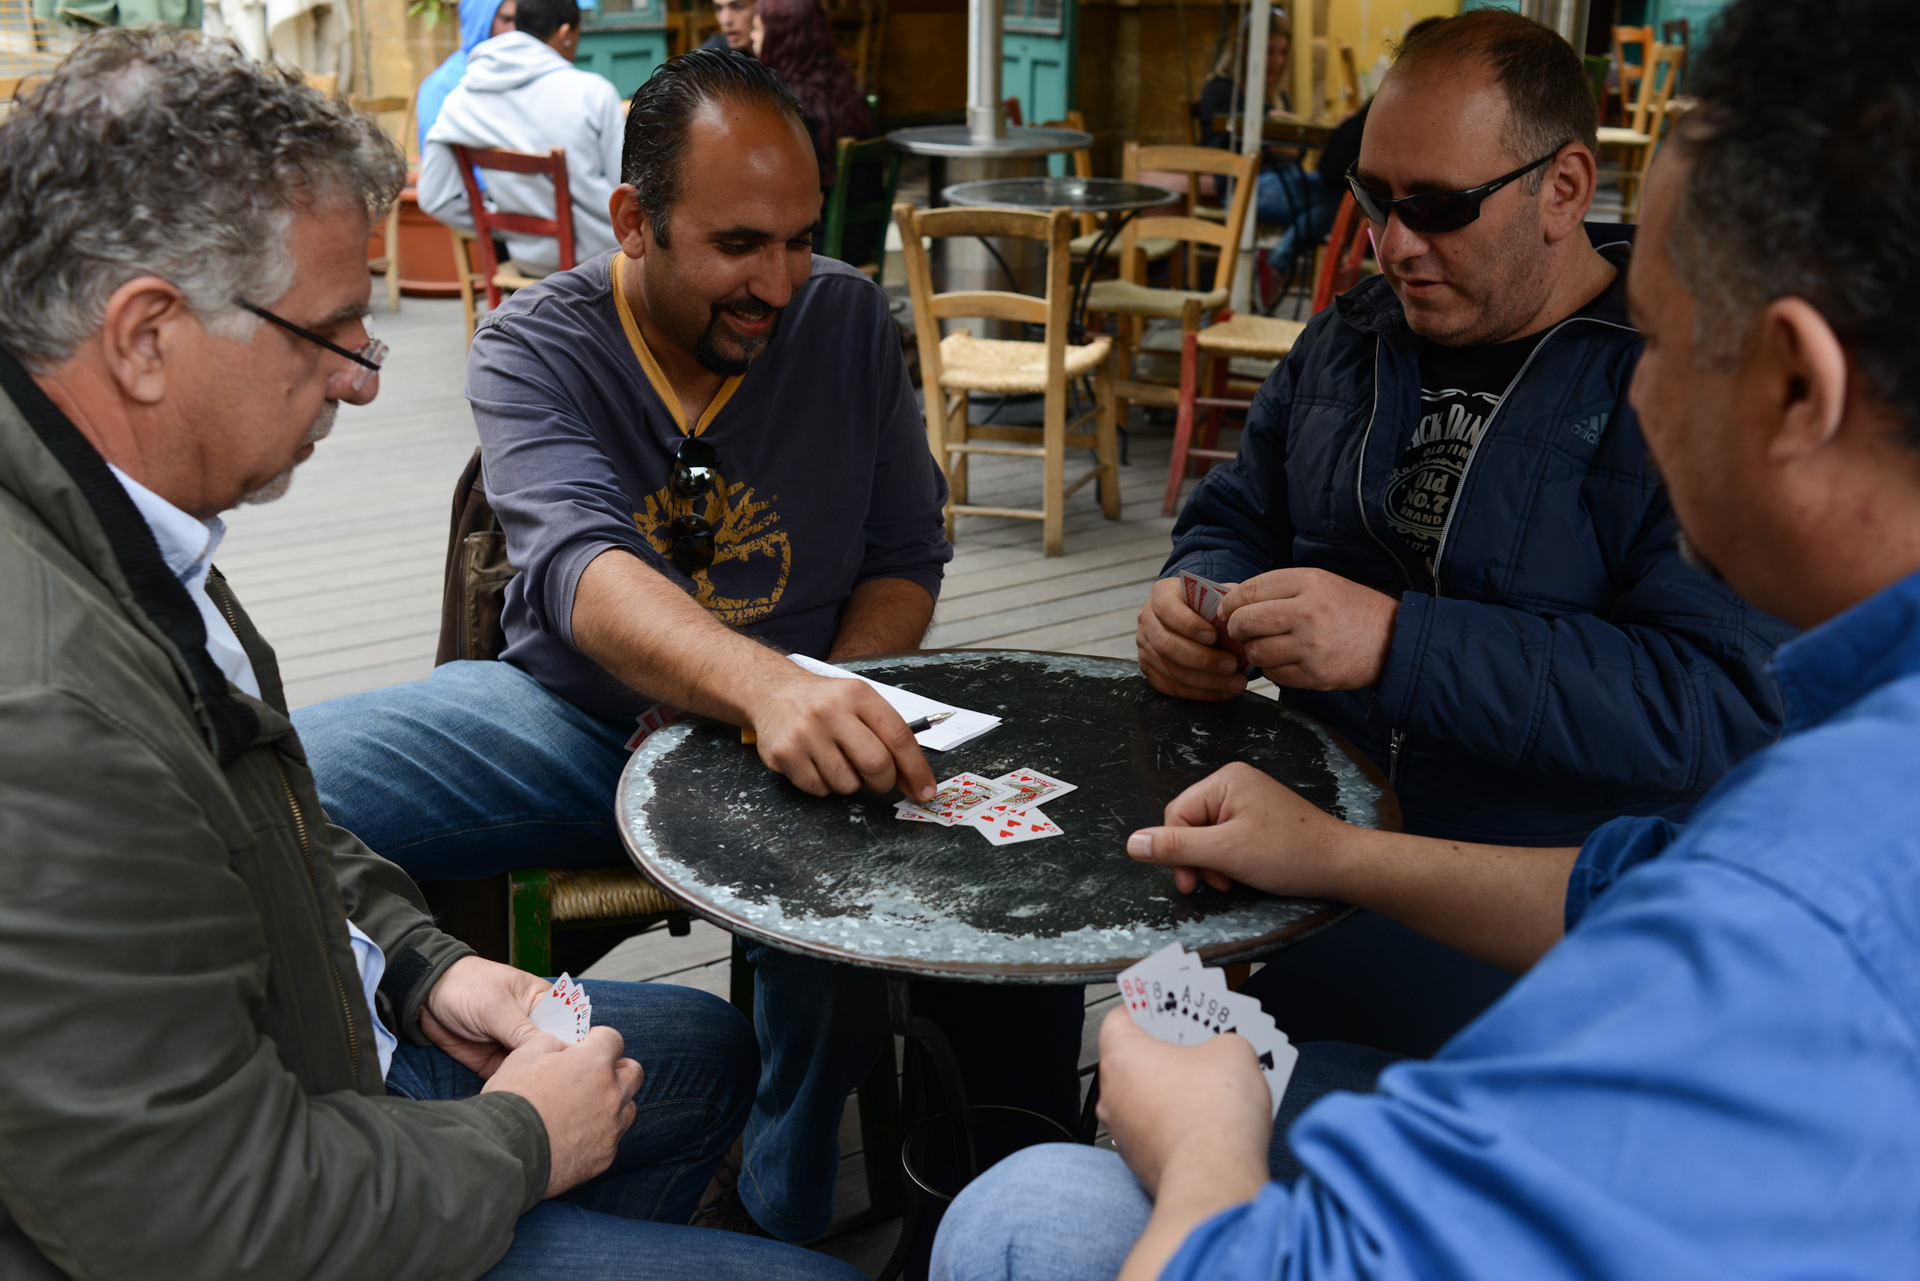 NICOSIA, CYPRUS.  (L-r) Anthoulis Myrianthous, 56, a former banker at the Bank of Cyprus, Doros Limbouris, 35, a civil engineer, Panayiotis Markou, 44, an employee at the Bank of Cyprus and George Tsountas, 44, a civil engineer, sit around and play the card game pilota at the Cafe Kala Kathoumena in the old city since their jobs are on hold until the banks reopen on March 26, 2013.